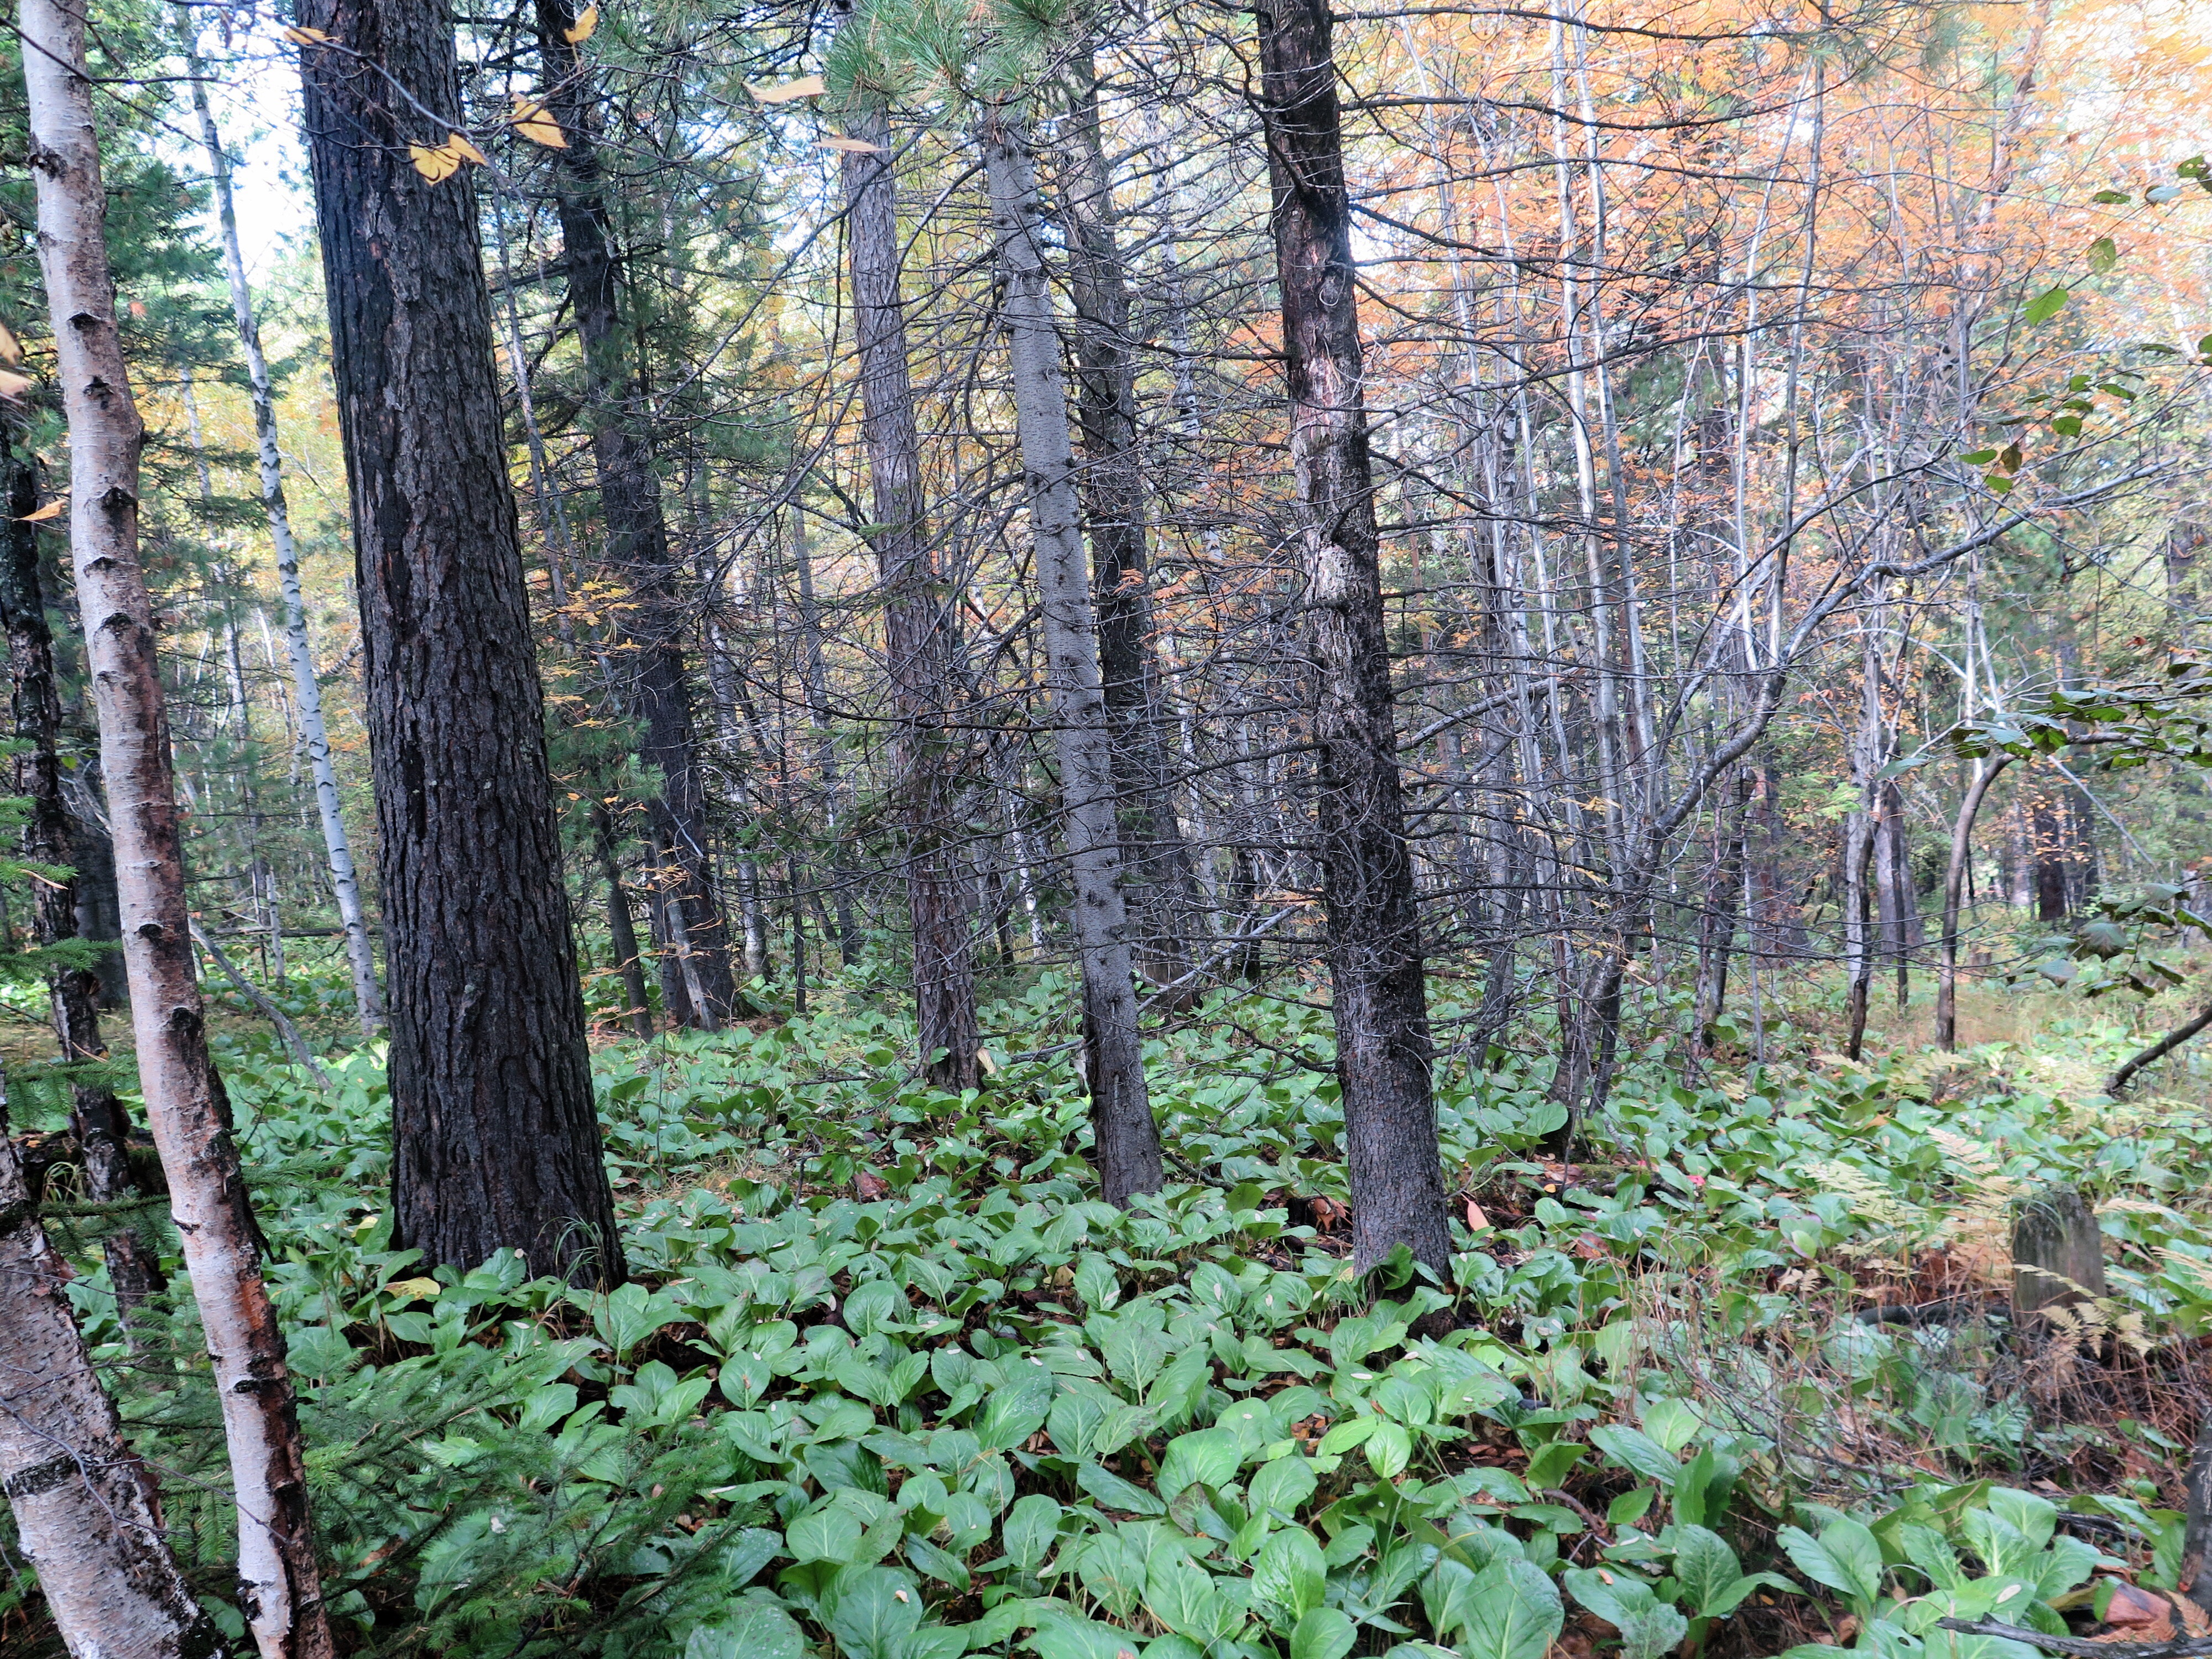 There were many different types of plants, grouped in ways that made me feel like the trail changed more than it did.